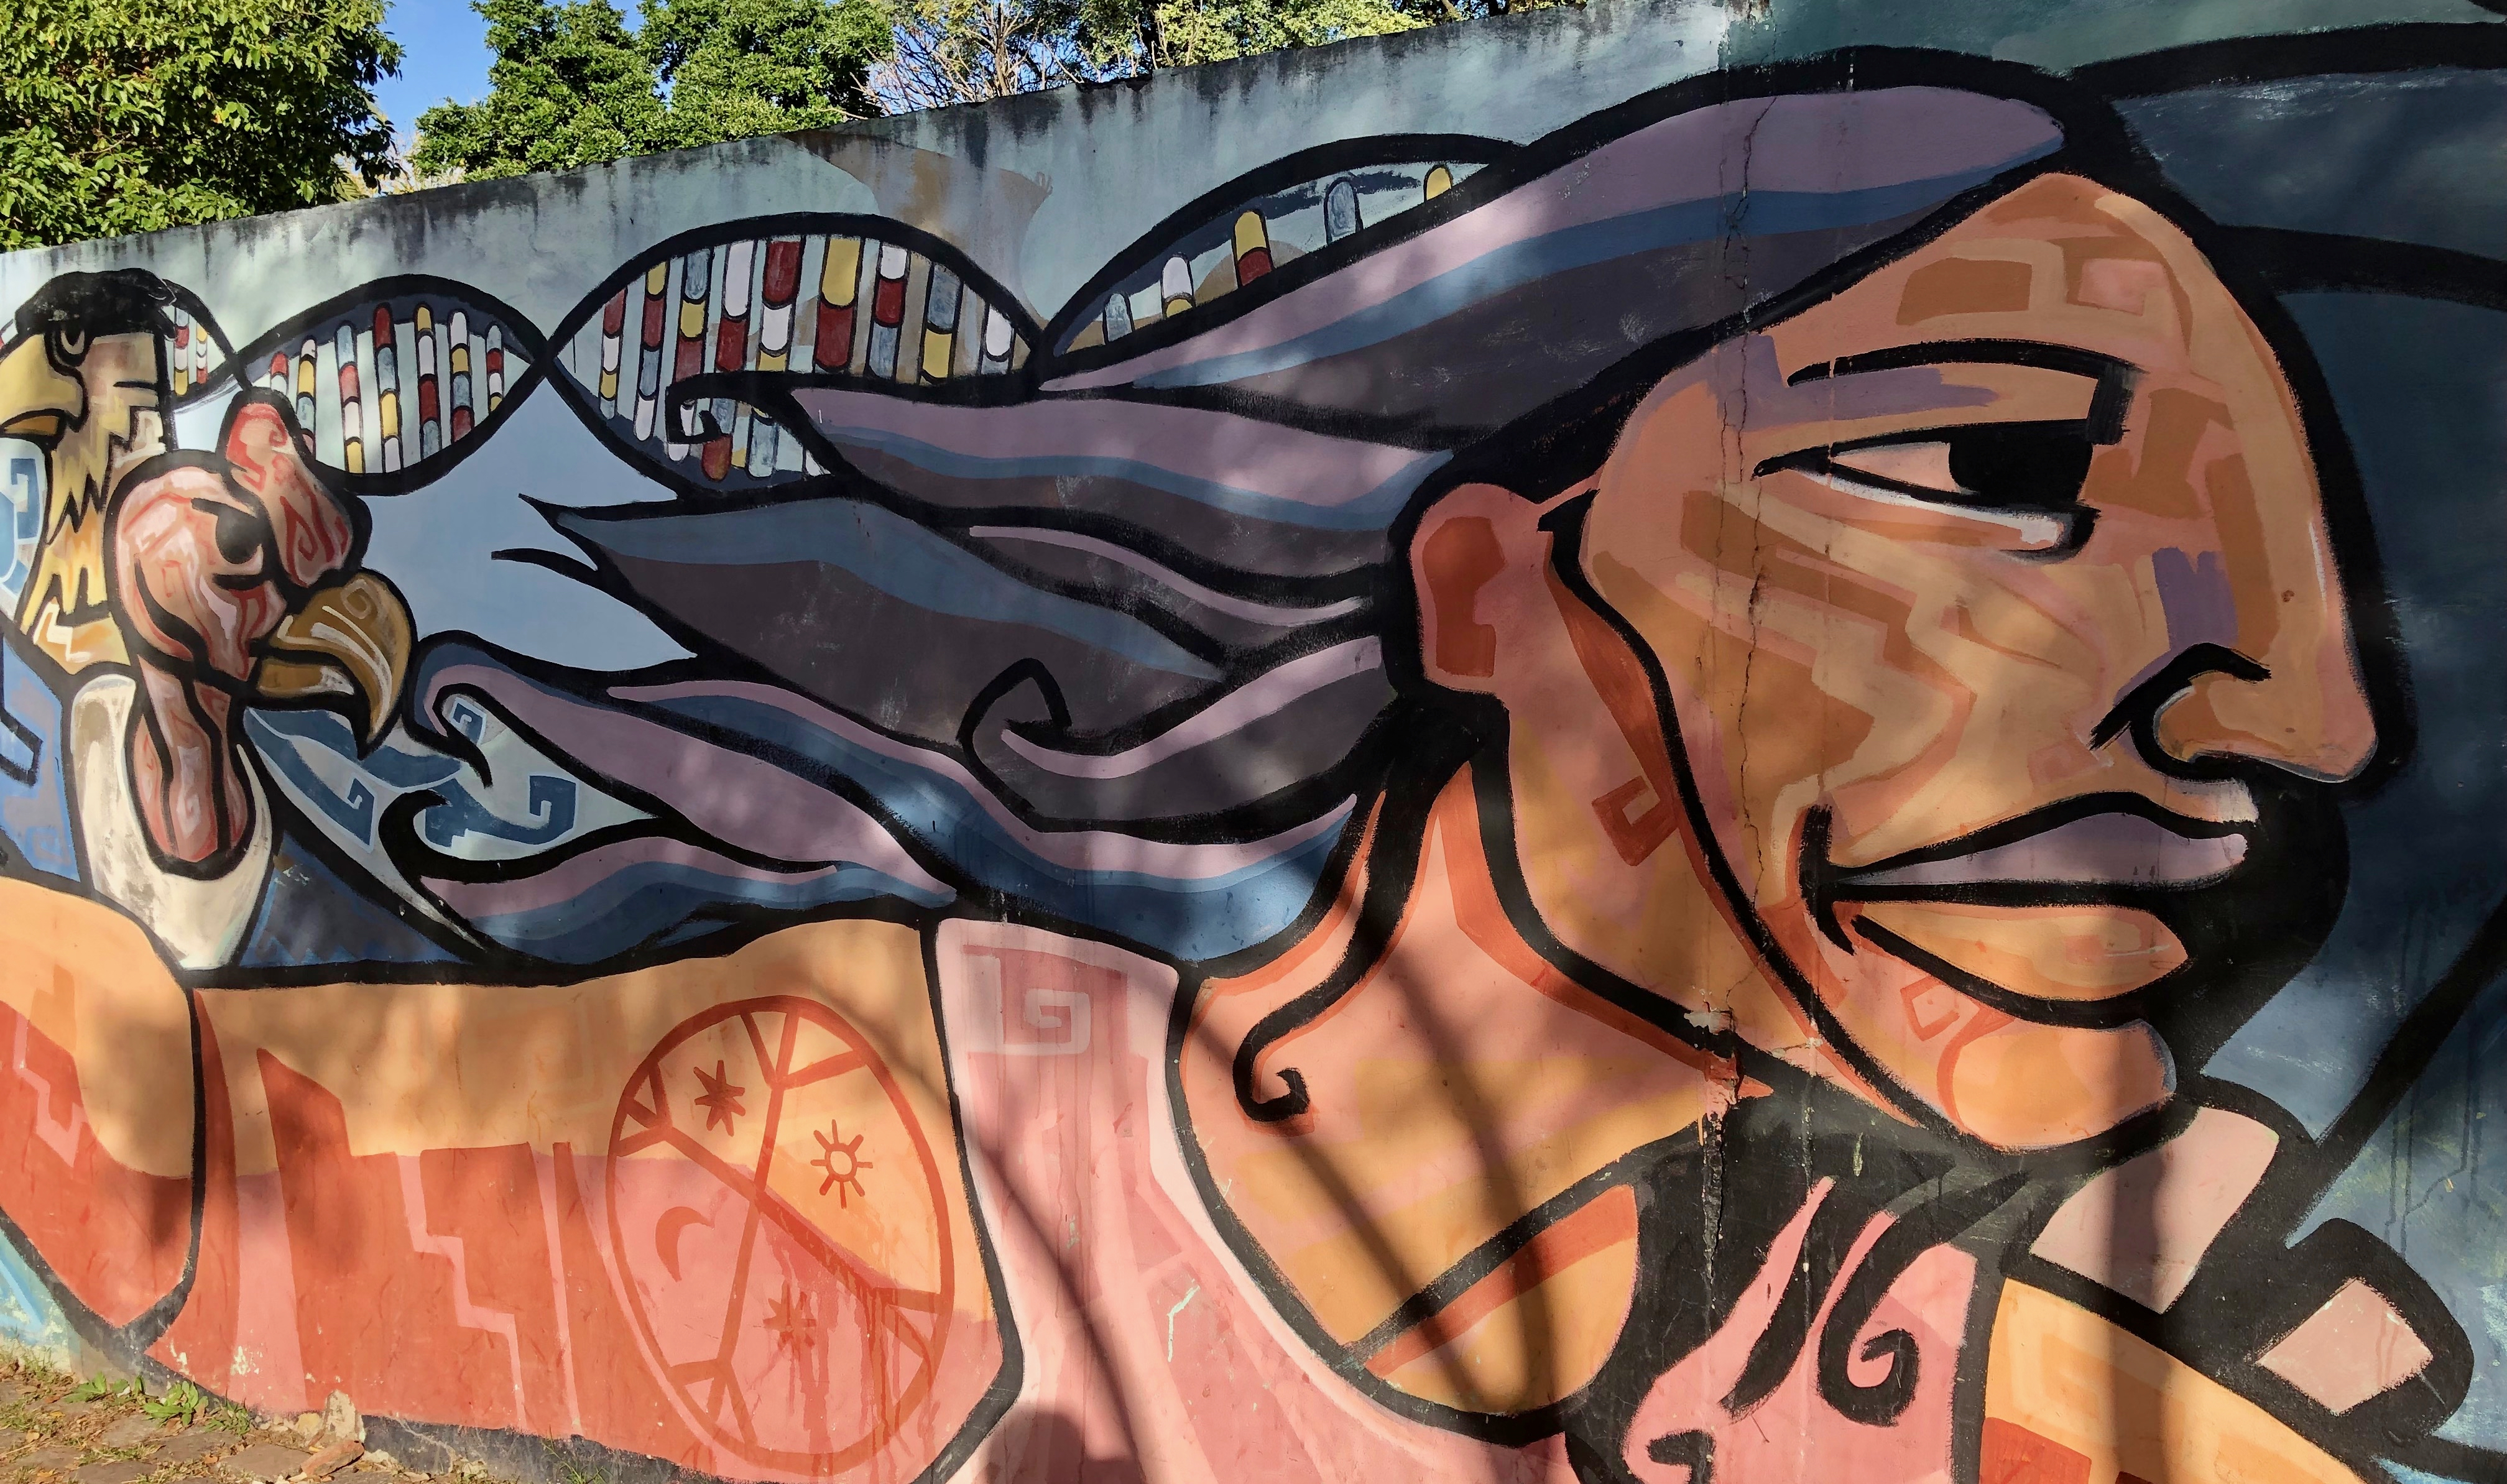 A mural in Buenos Aires with DNA double Helix showing nucleotide pairs, native animals and people